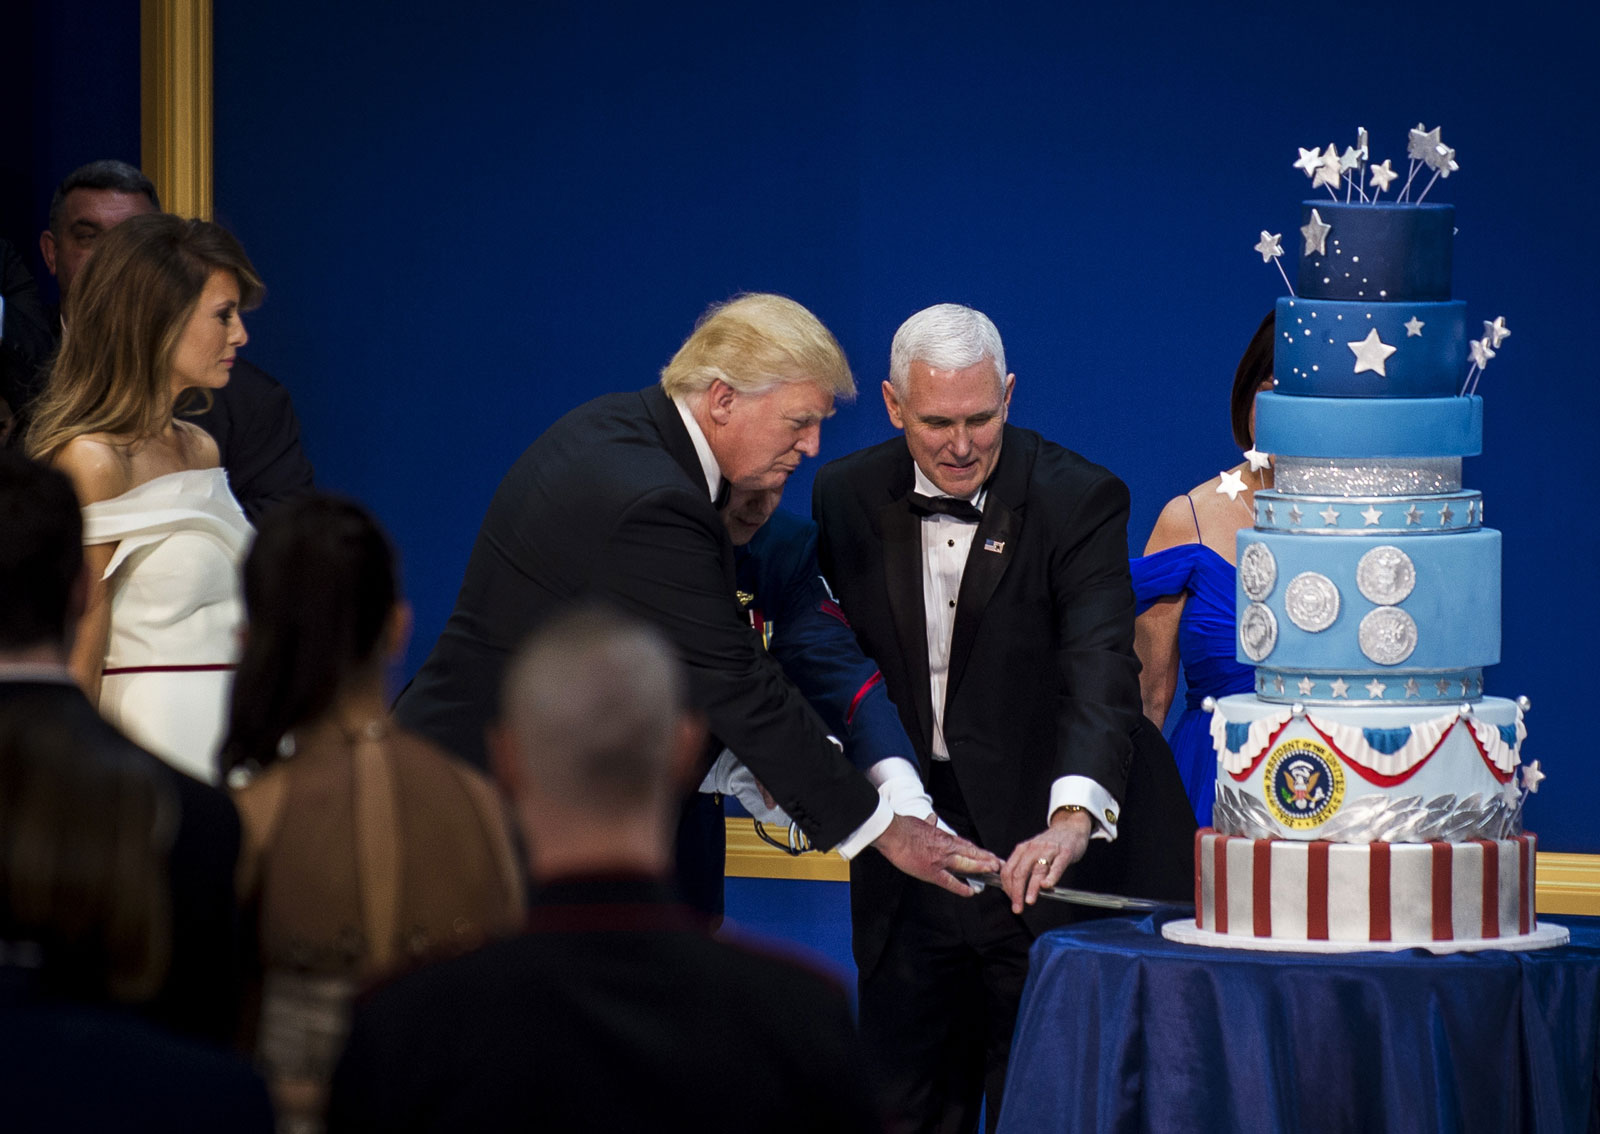 First Lady Melania Trump, President Donald Trump, and Vice President Mike Pence, Washington, D.C., January 20, 2017